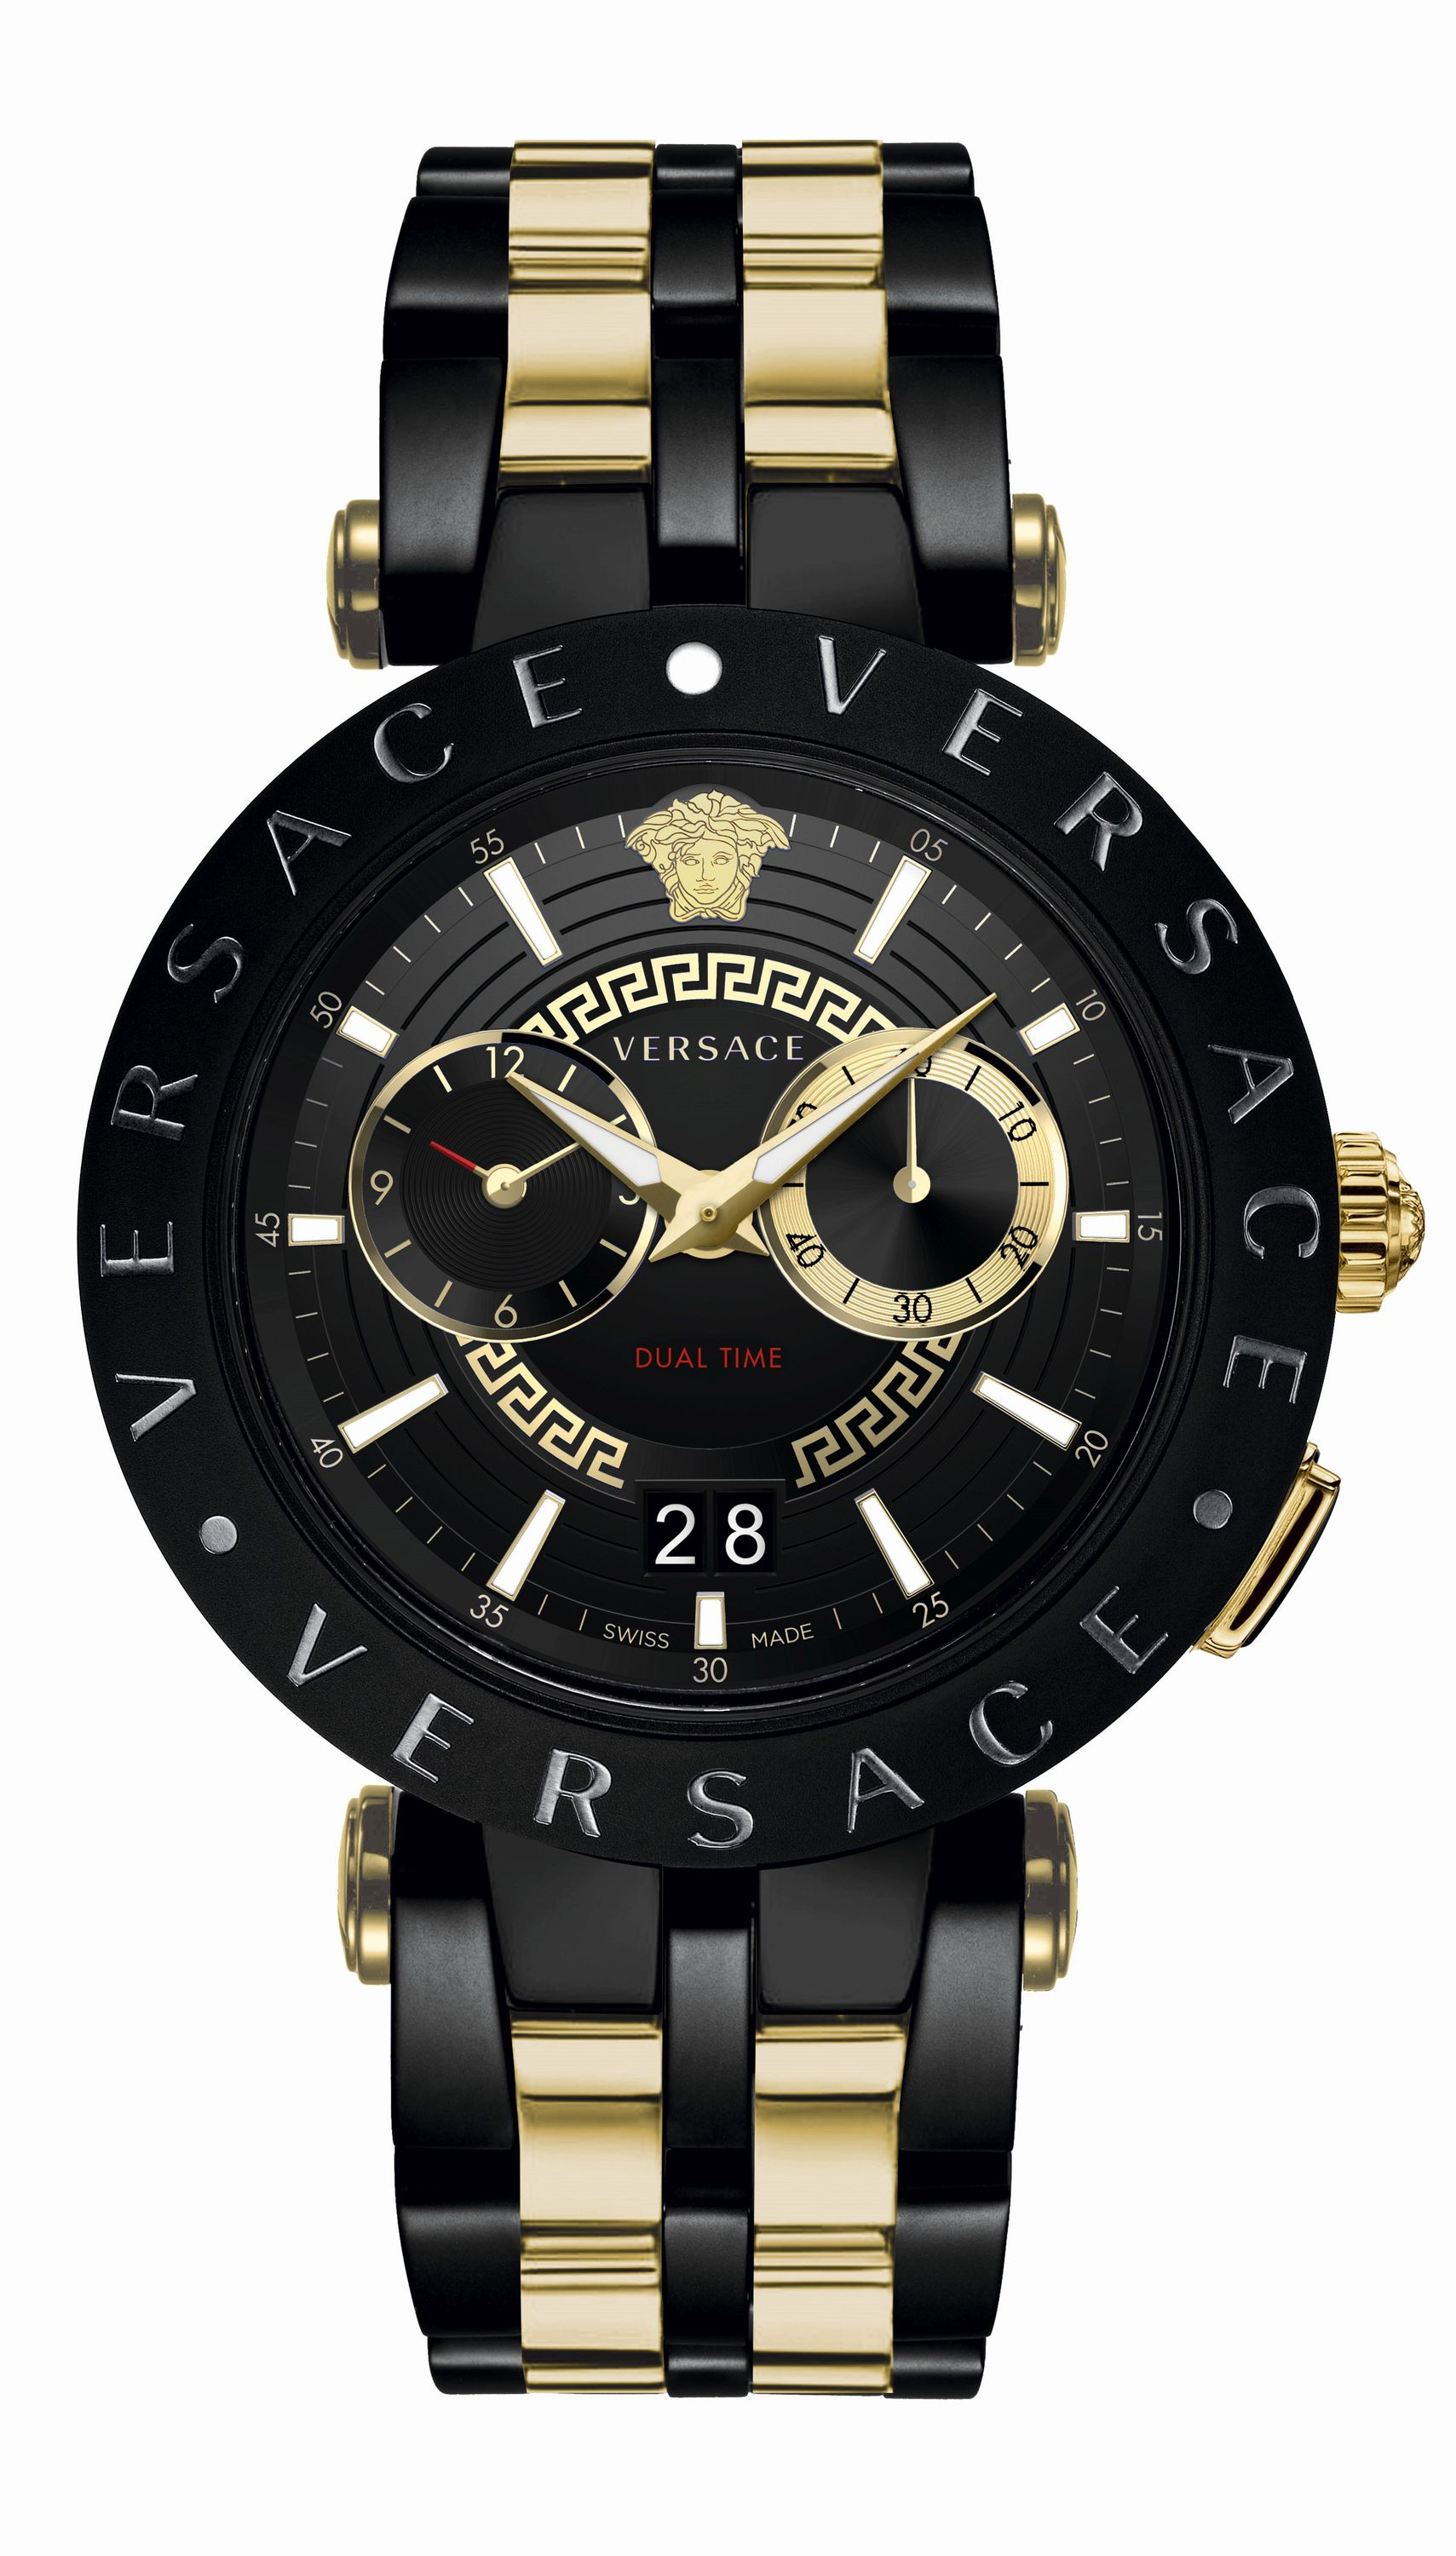 Versace Vebv006 19 Watchroom24